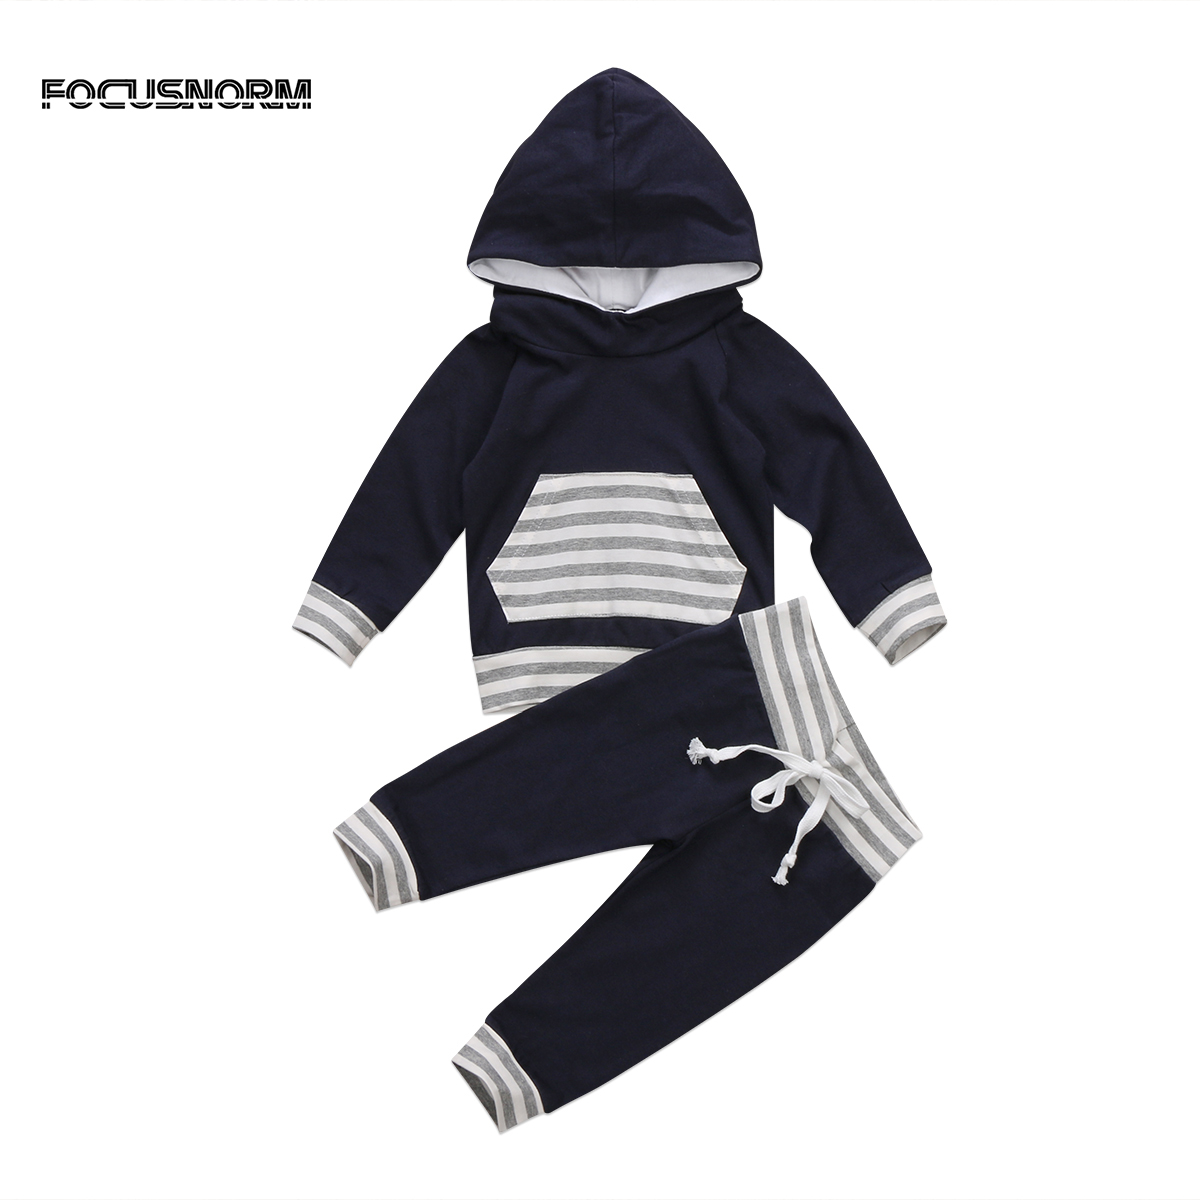 Newborn Kids Baby Boys Striped Long Sleeves Hooded Tops+Drawstring Long Pants Leggings Outfits Set Clothes